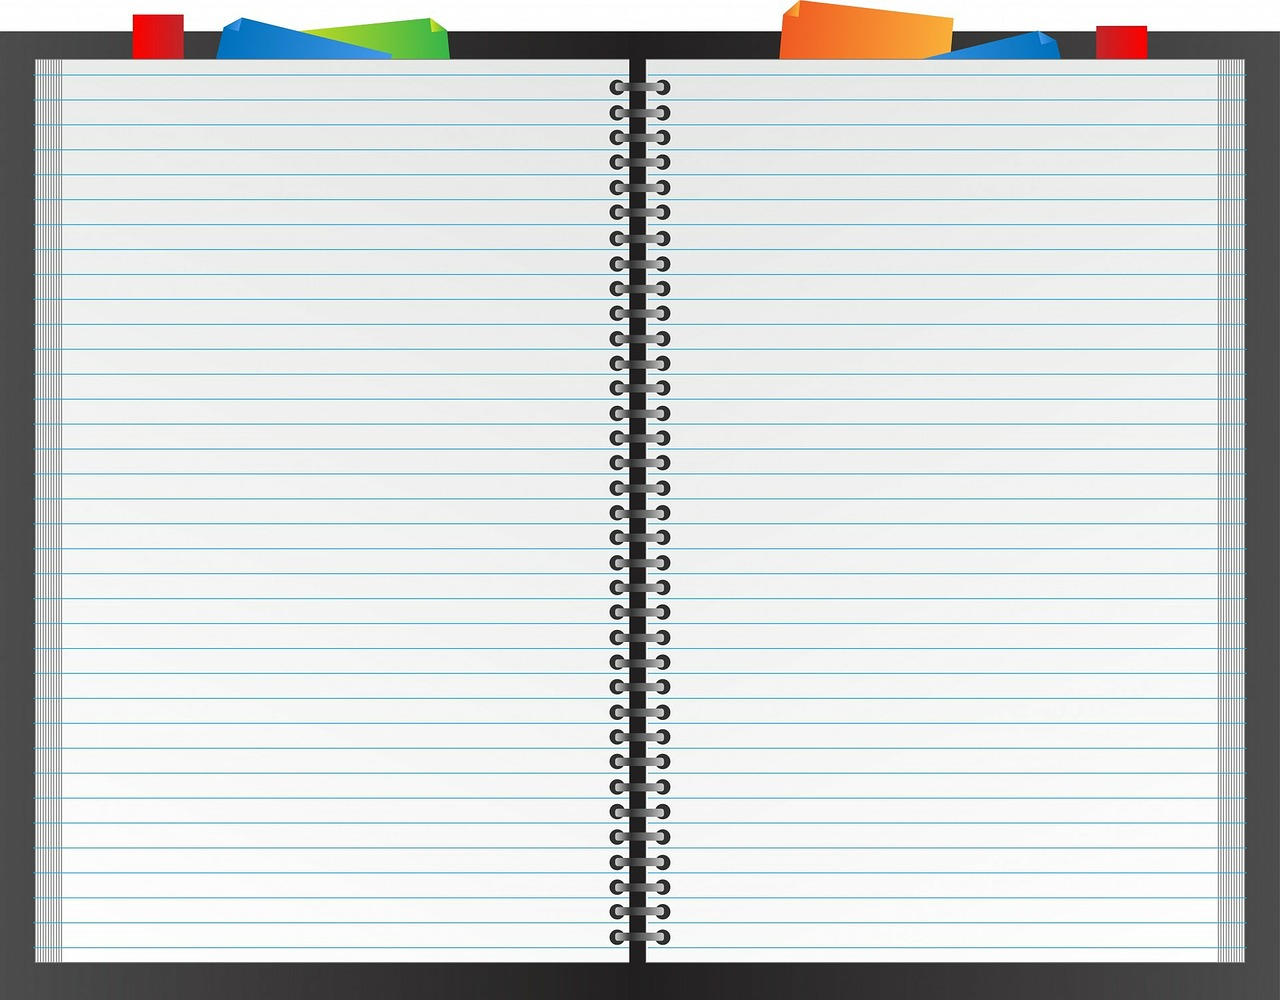 Blank open spiral note book clipart free svg free download Notebook,book,planner,note paper,paper - free photo from needpix.com svg free download